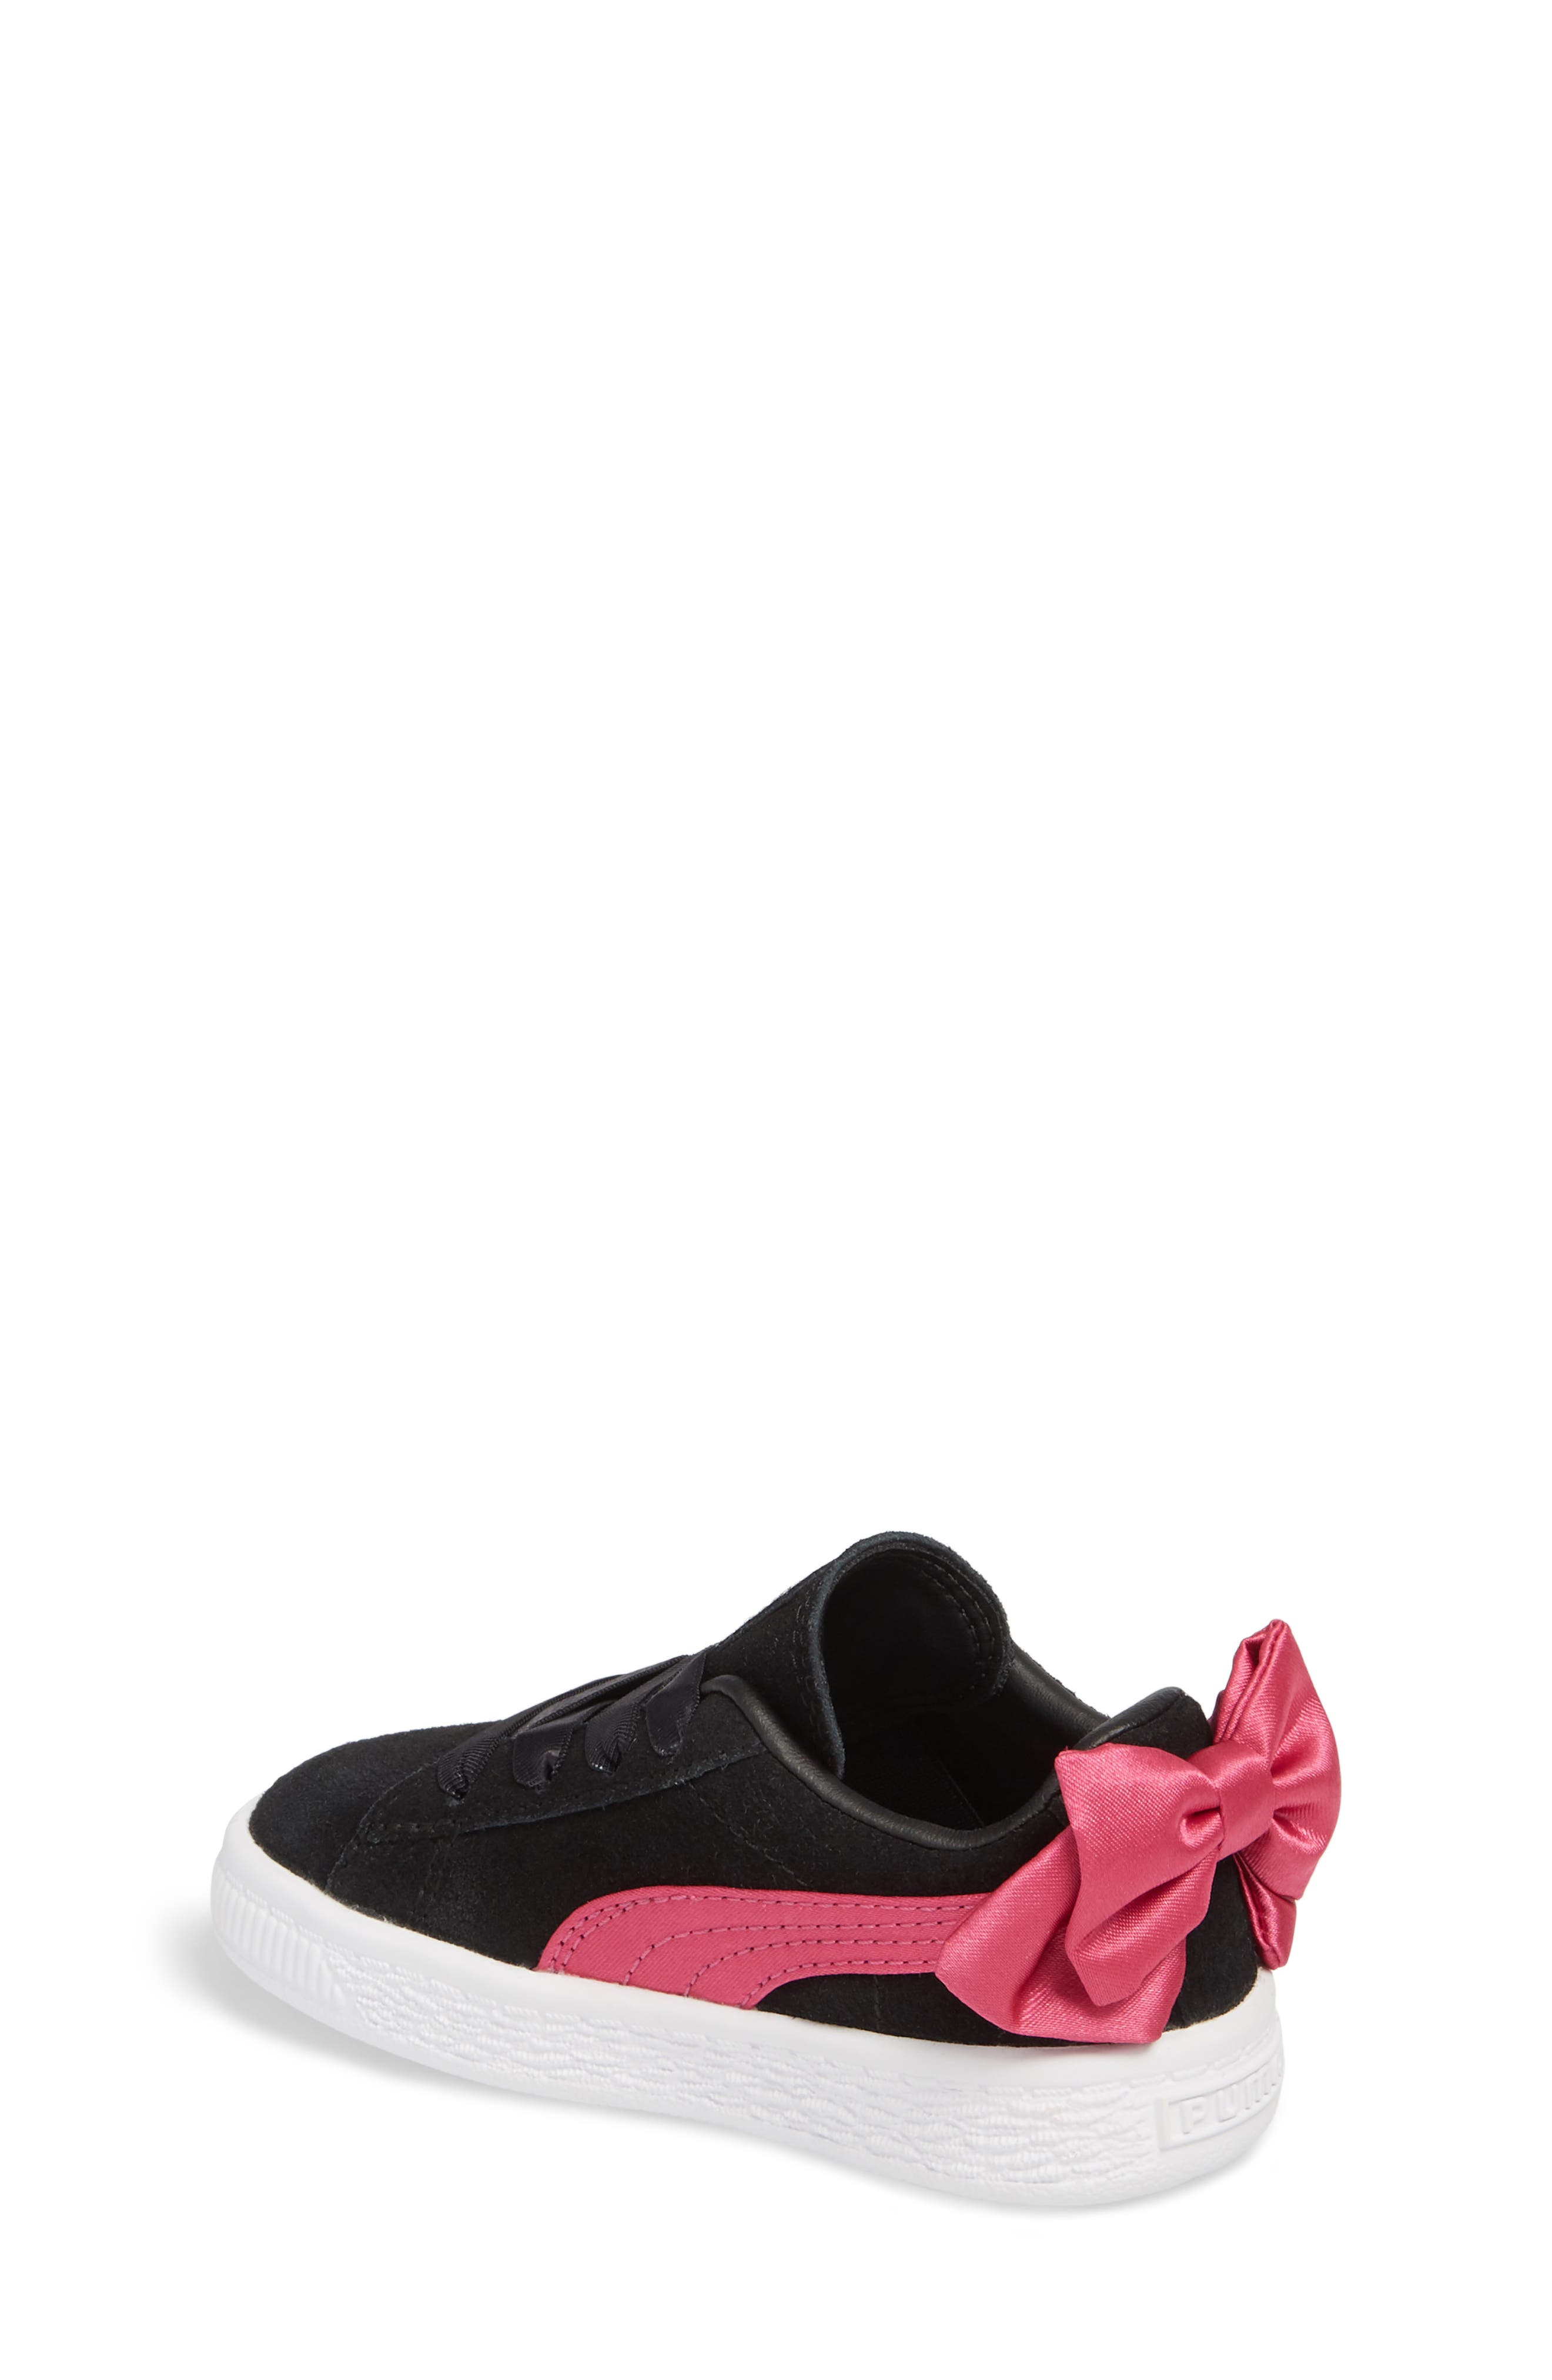 Bow Sneaker,                             Alternate thumbnail 2, color,                             BLACK/ BEETROOT PURPLE